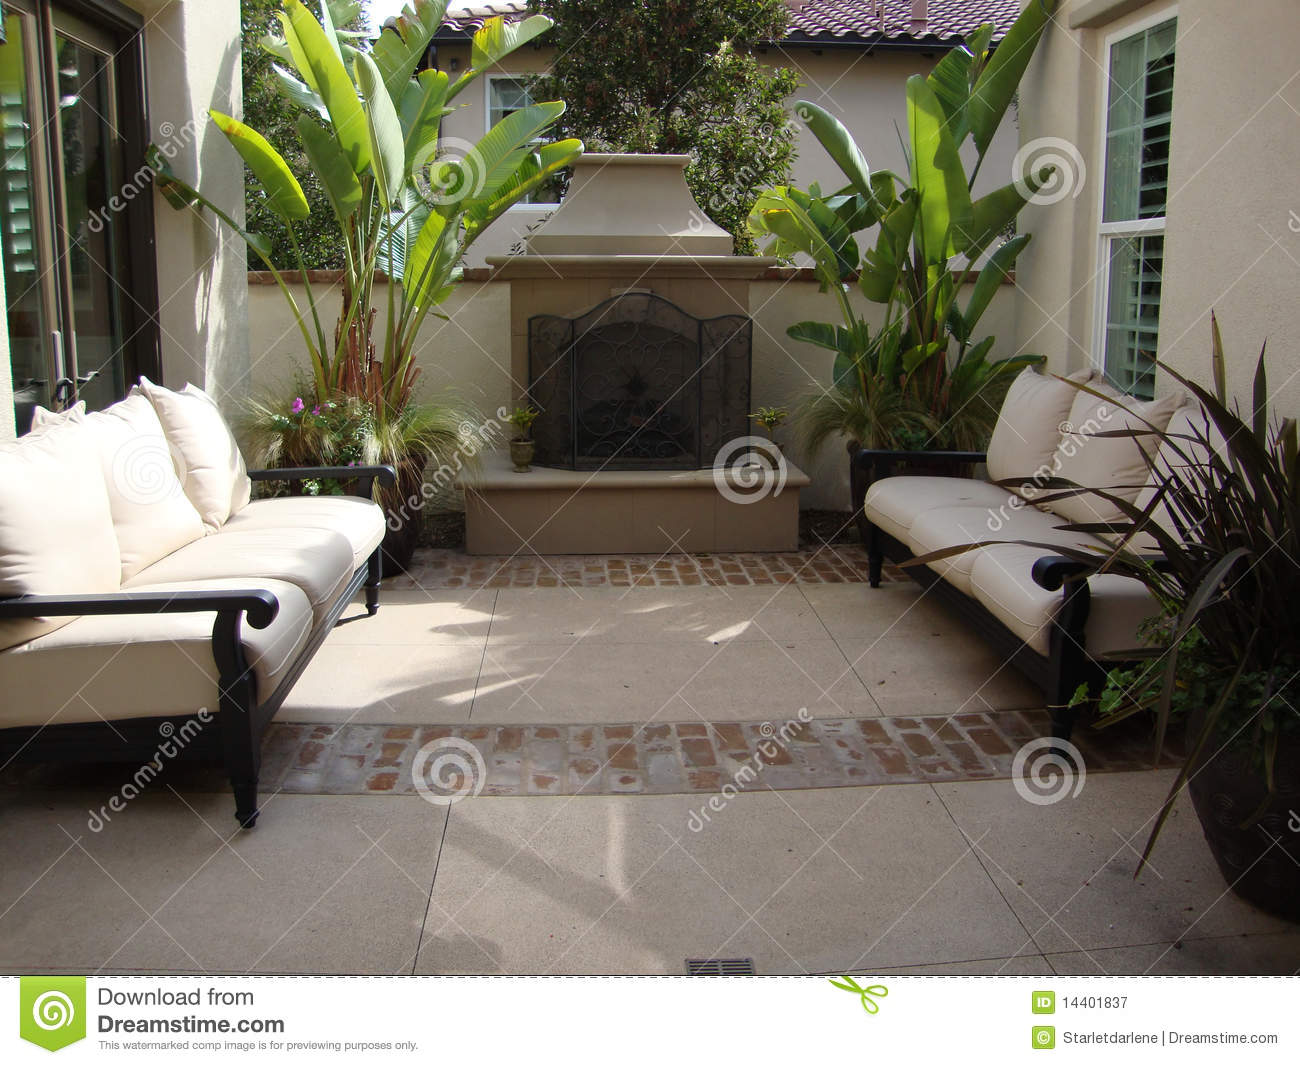 Outdoor Patio And Fireplace Royalty Free Stock Photography